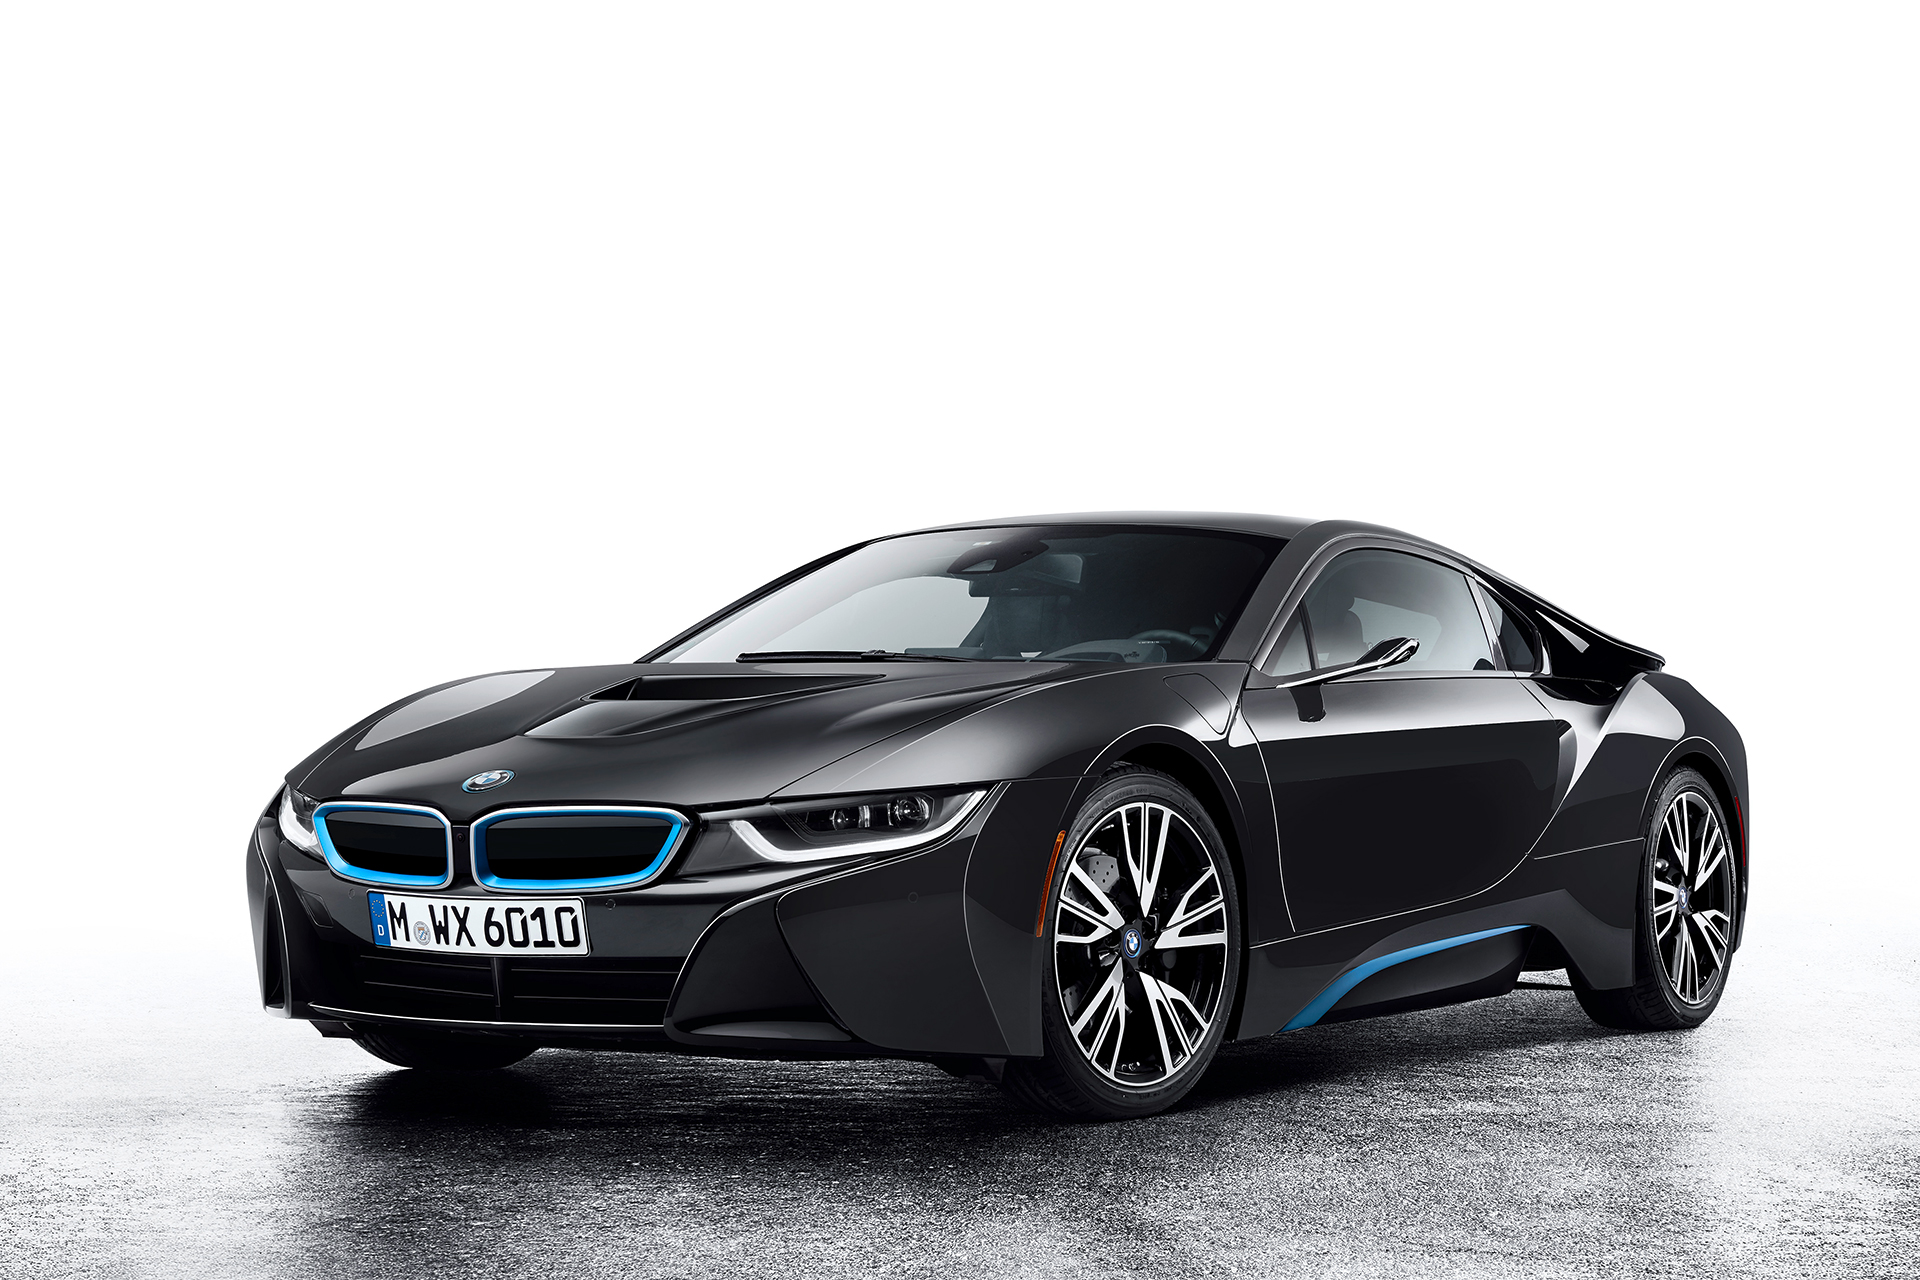 BMW i8 Mirrorless - front side-face / profil avant